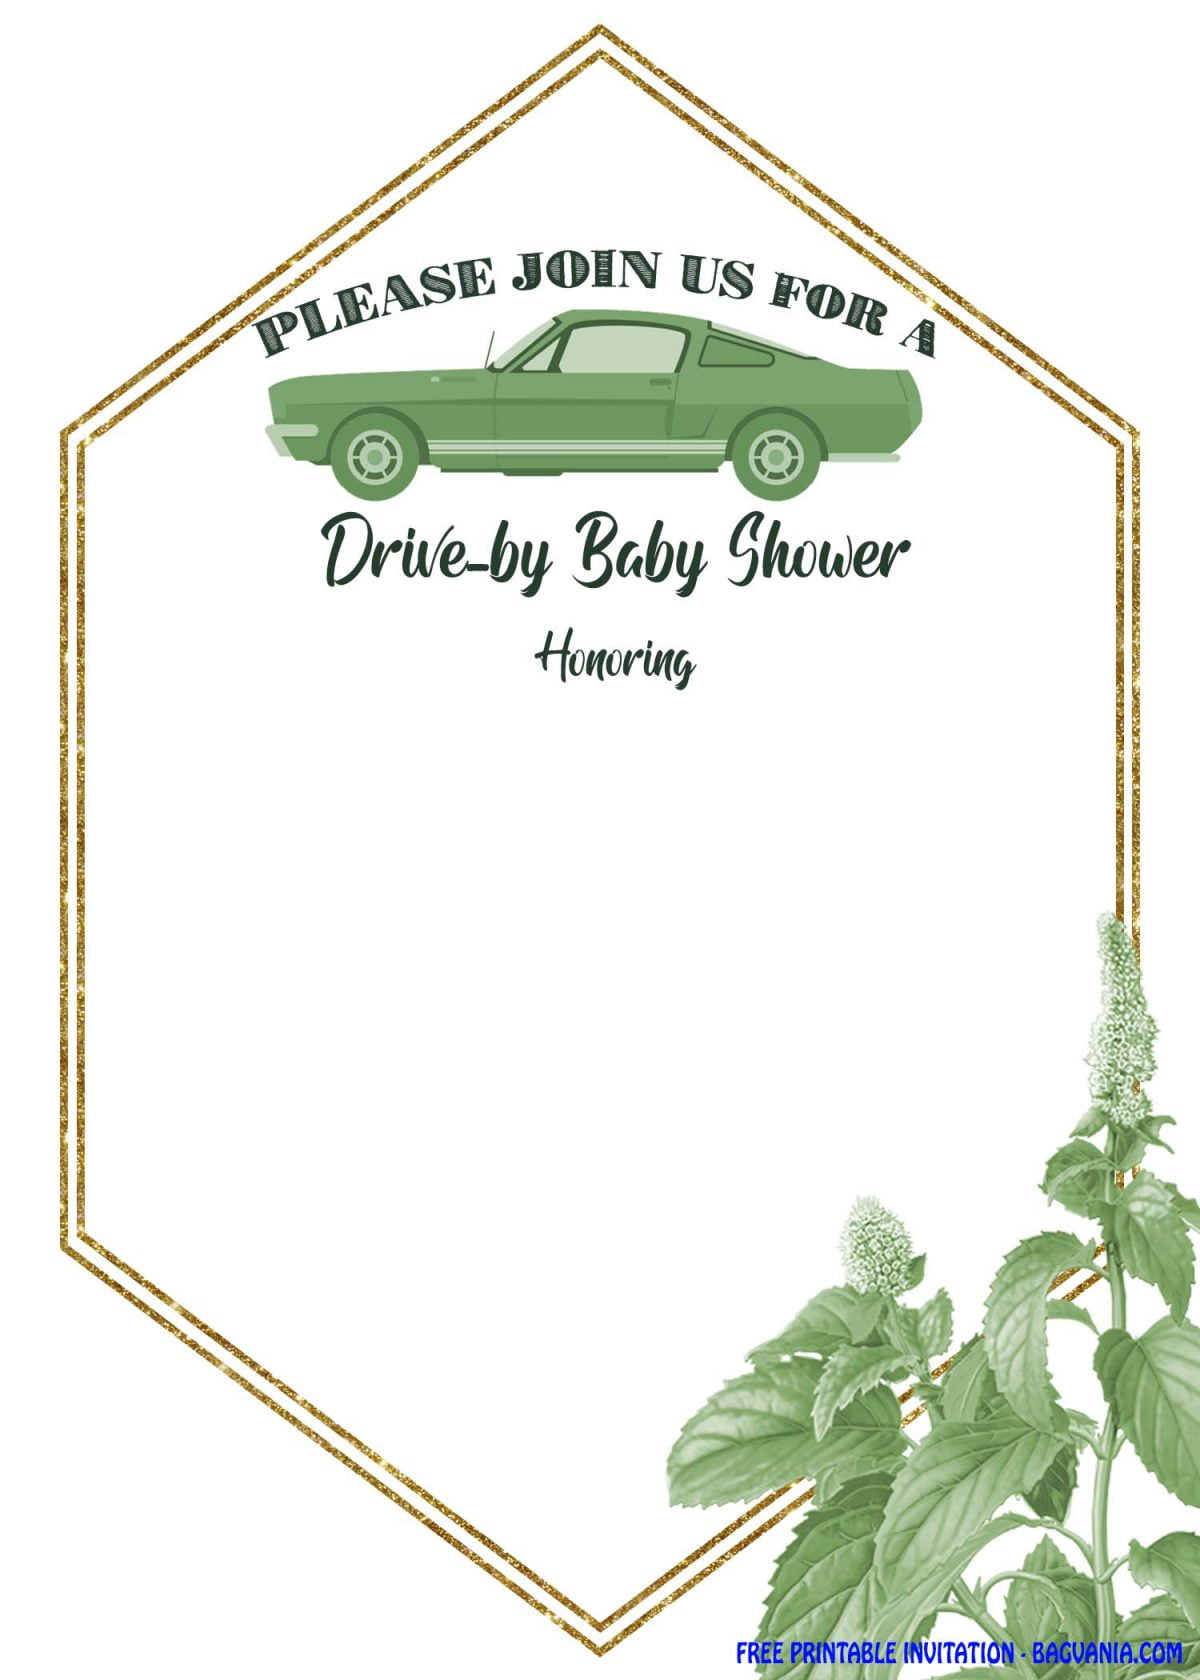 Free Printable Greenery Hexagonal Drive By Invitation Templates With Classic Car Image